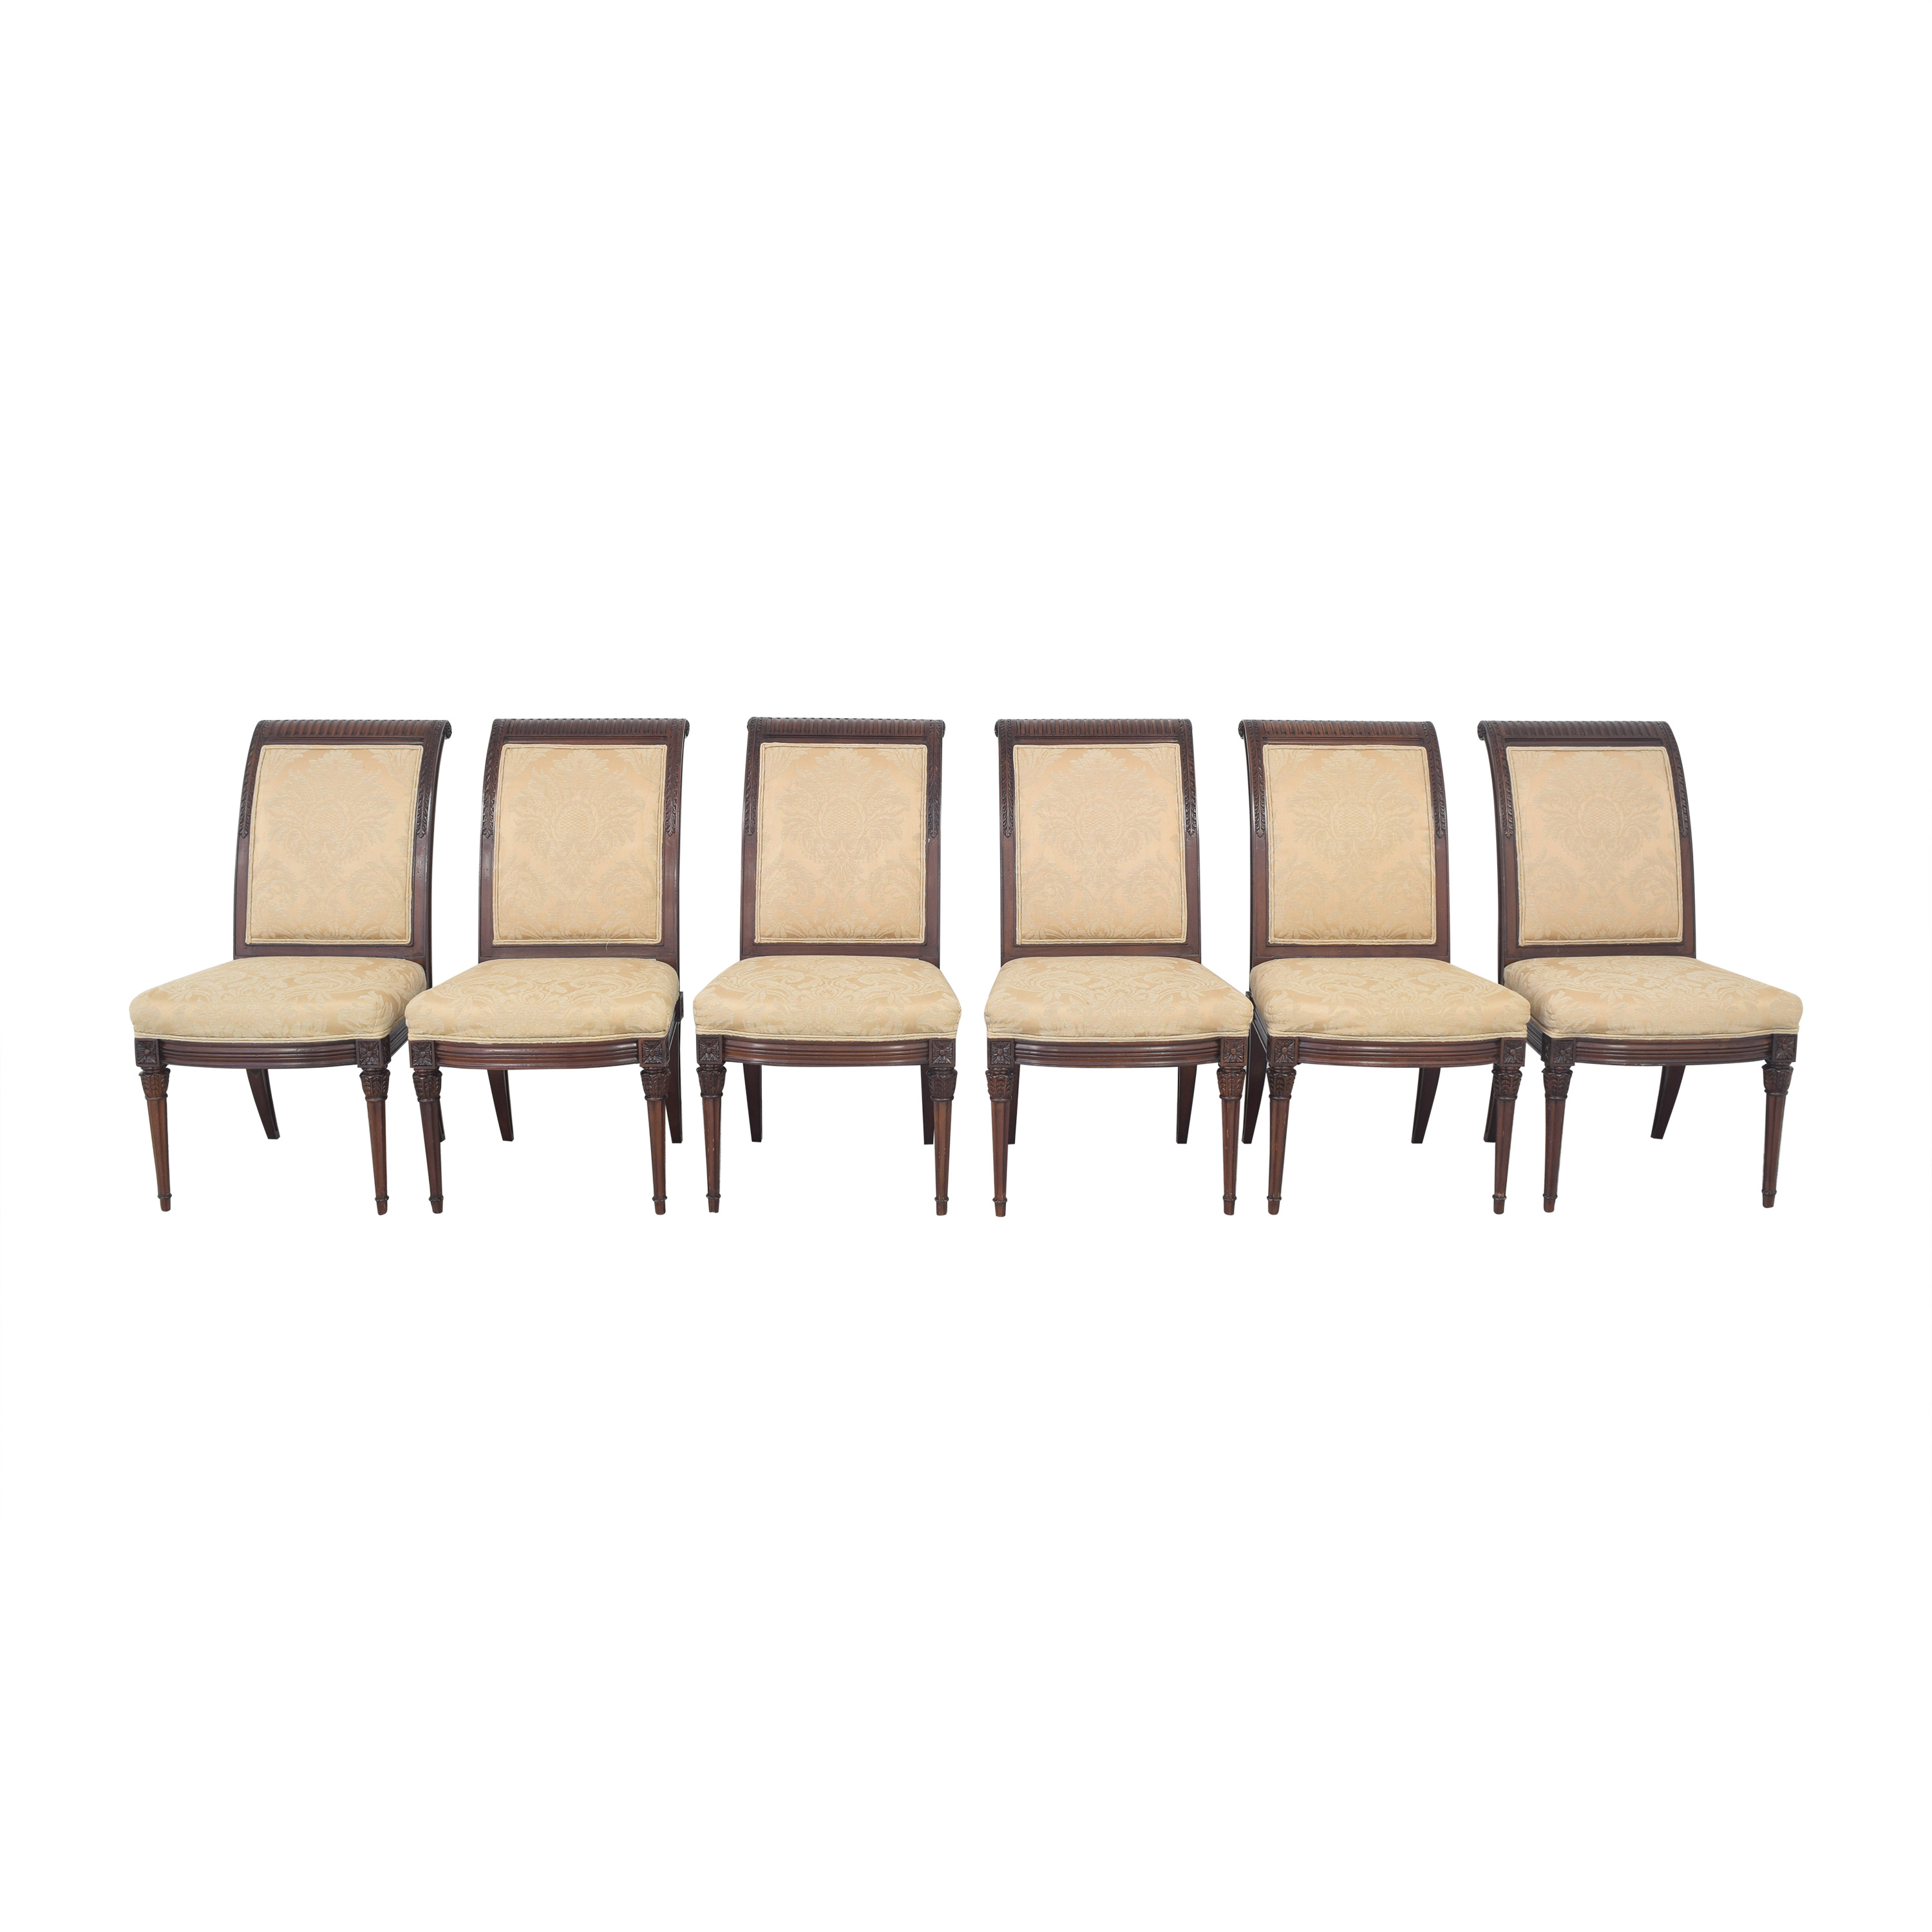 Councill Council Upholstered Dining Chairs nyc